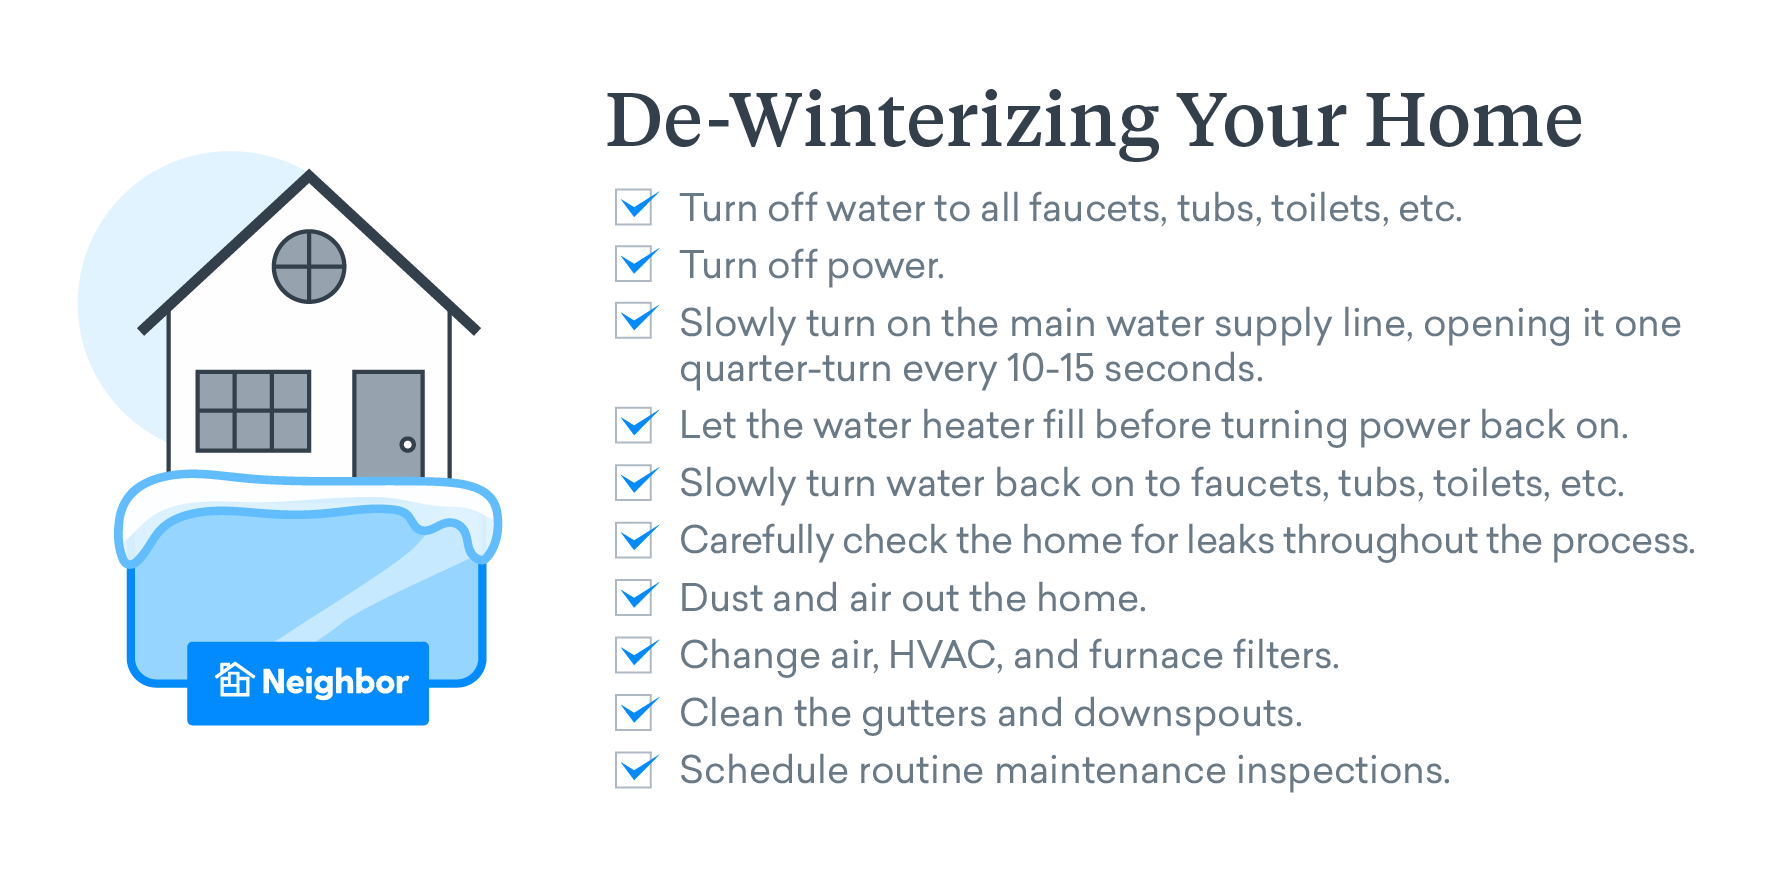 Dewinterizing your home